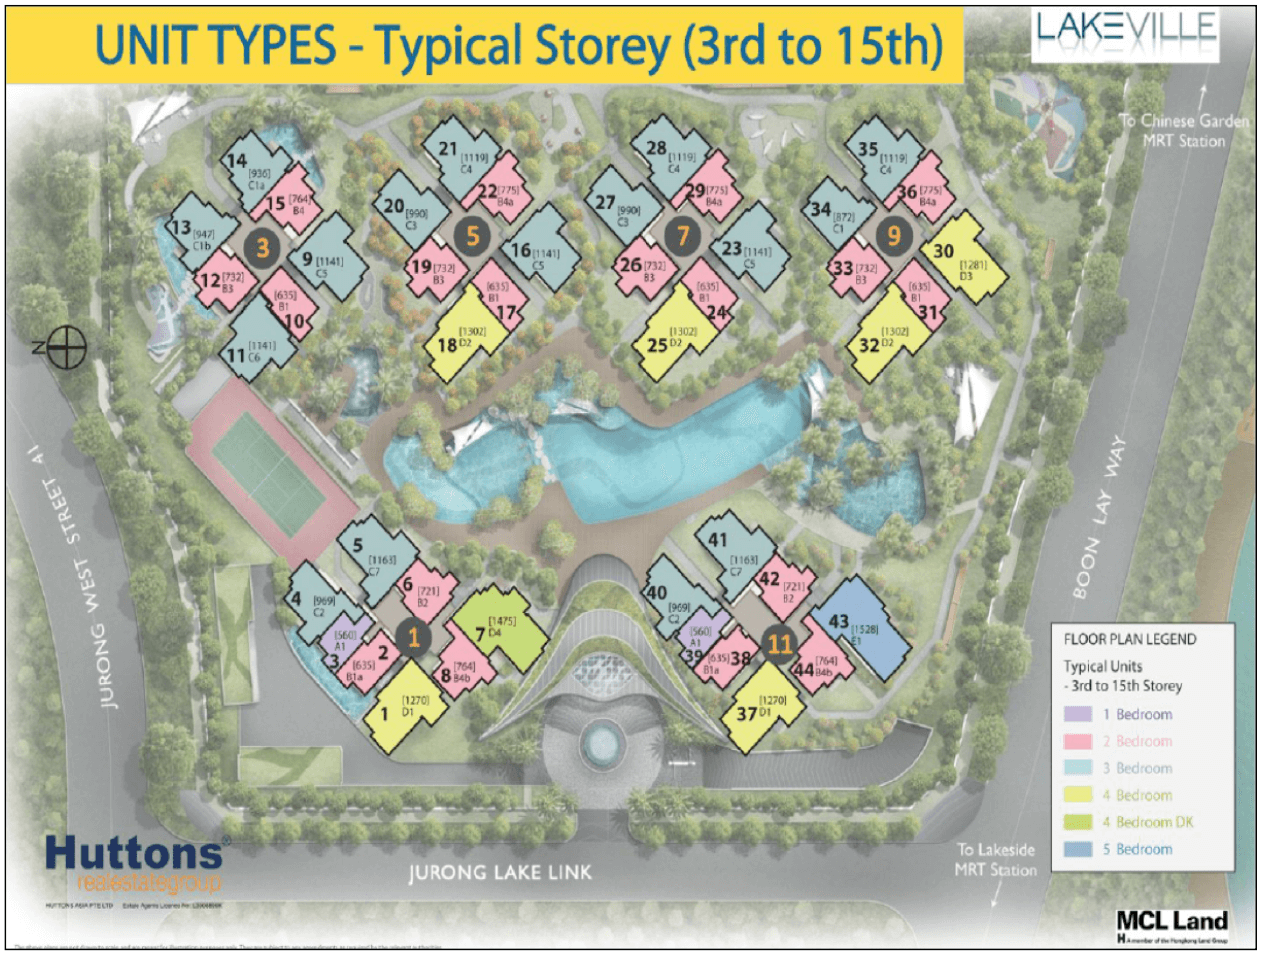 New Condo Launch - LakeVille - Site Plan 3rd to 15th Storey